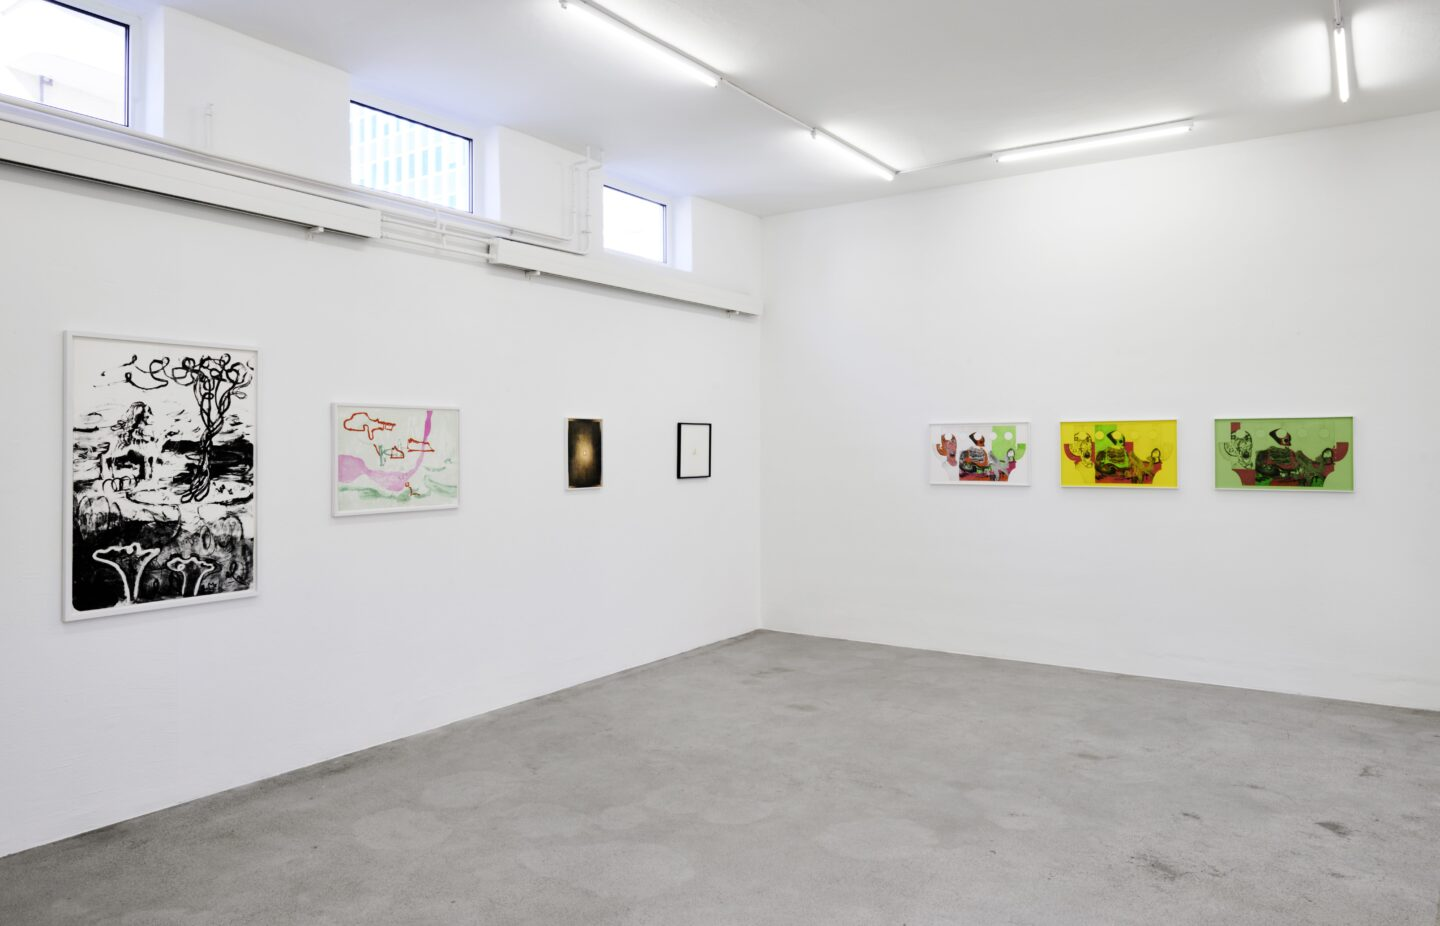 Exhibition View Groupshow «Intaglio and Lithography: Works on Paper» at Edition VFO, Zurch, 2020 / Photo: Sabina Bosch / Courtesy: the artists and Edition VFO